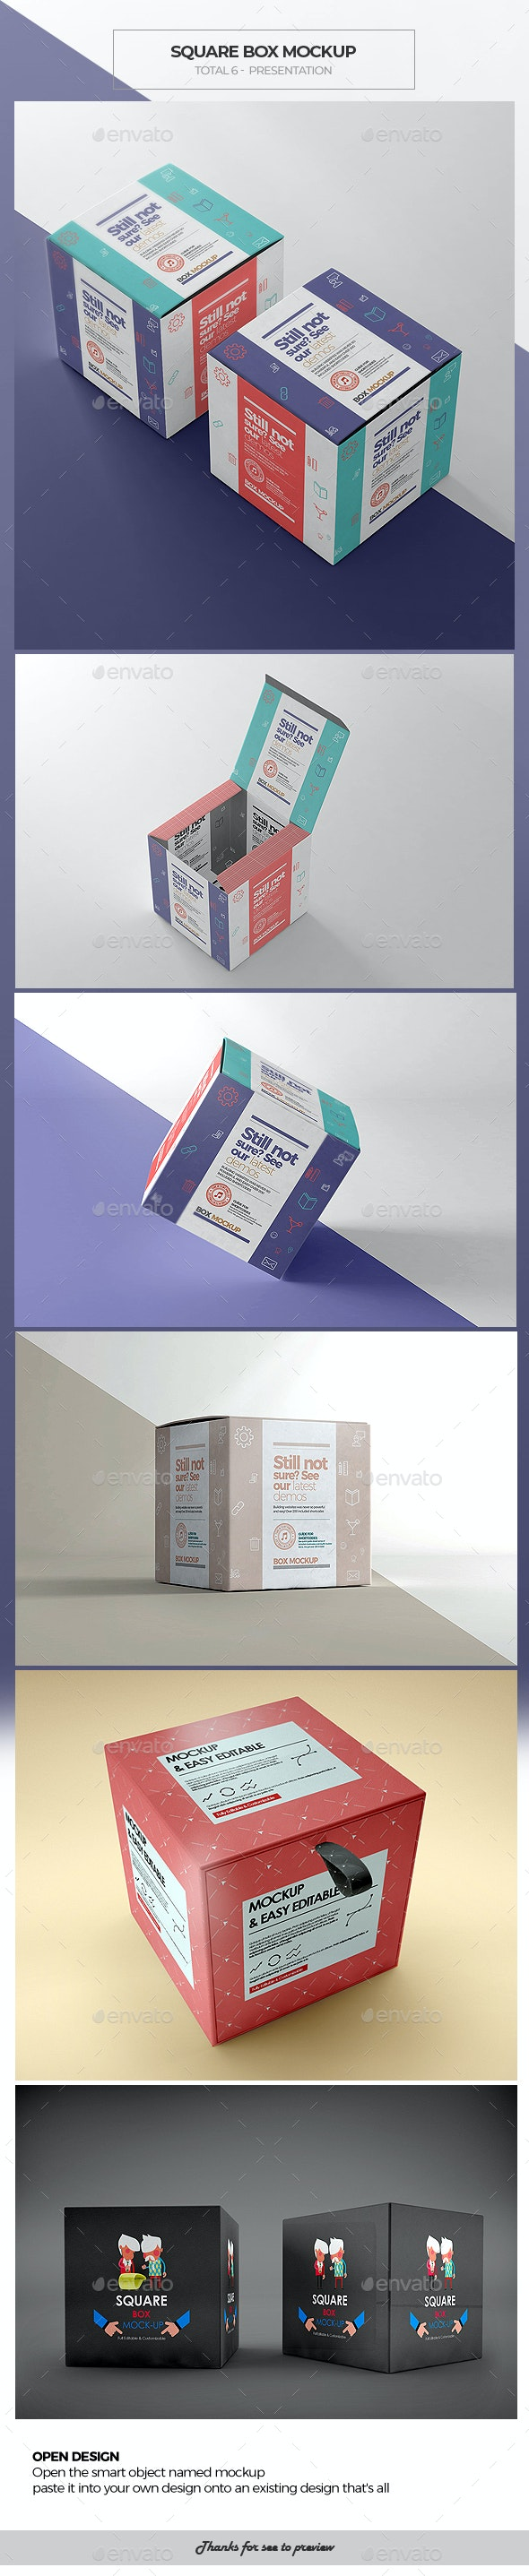 Square Box Mockup 2 - Miscellaneous Packaging